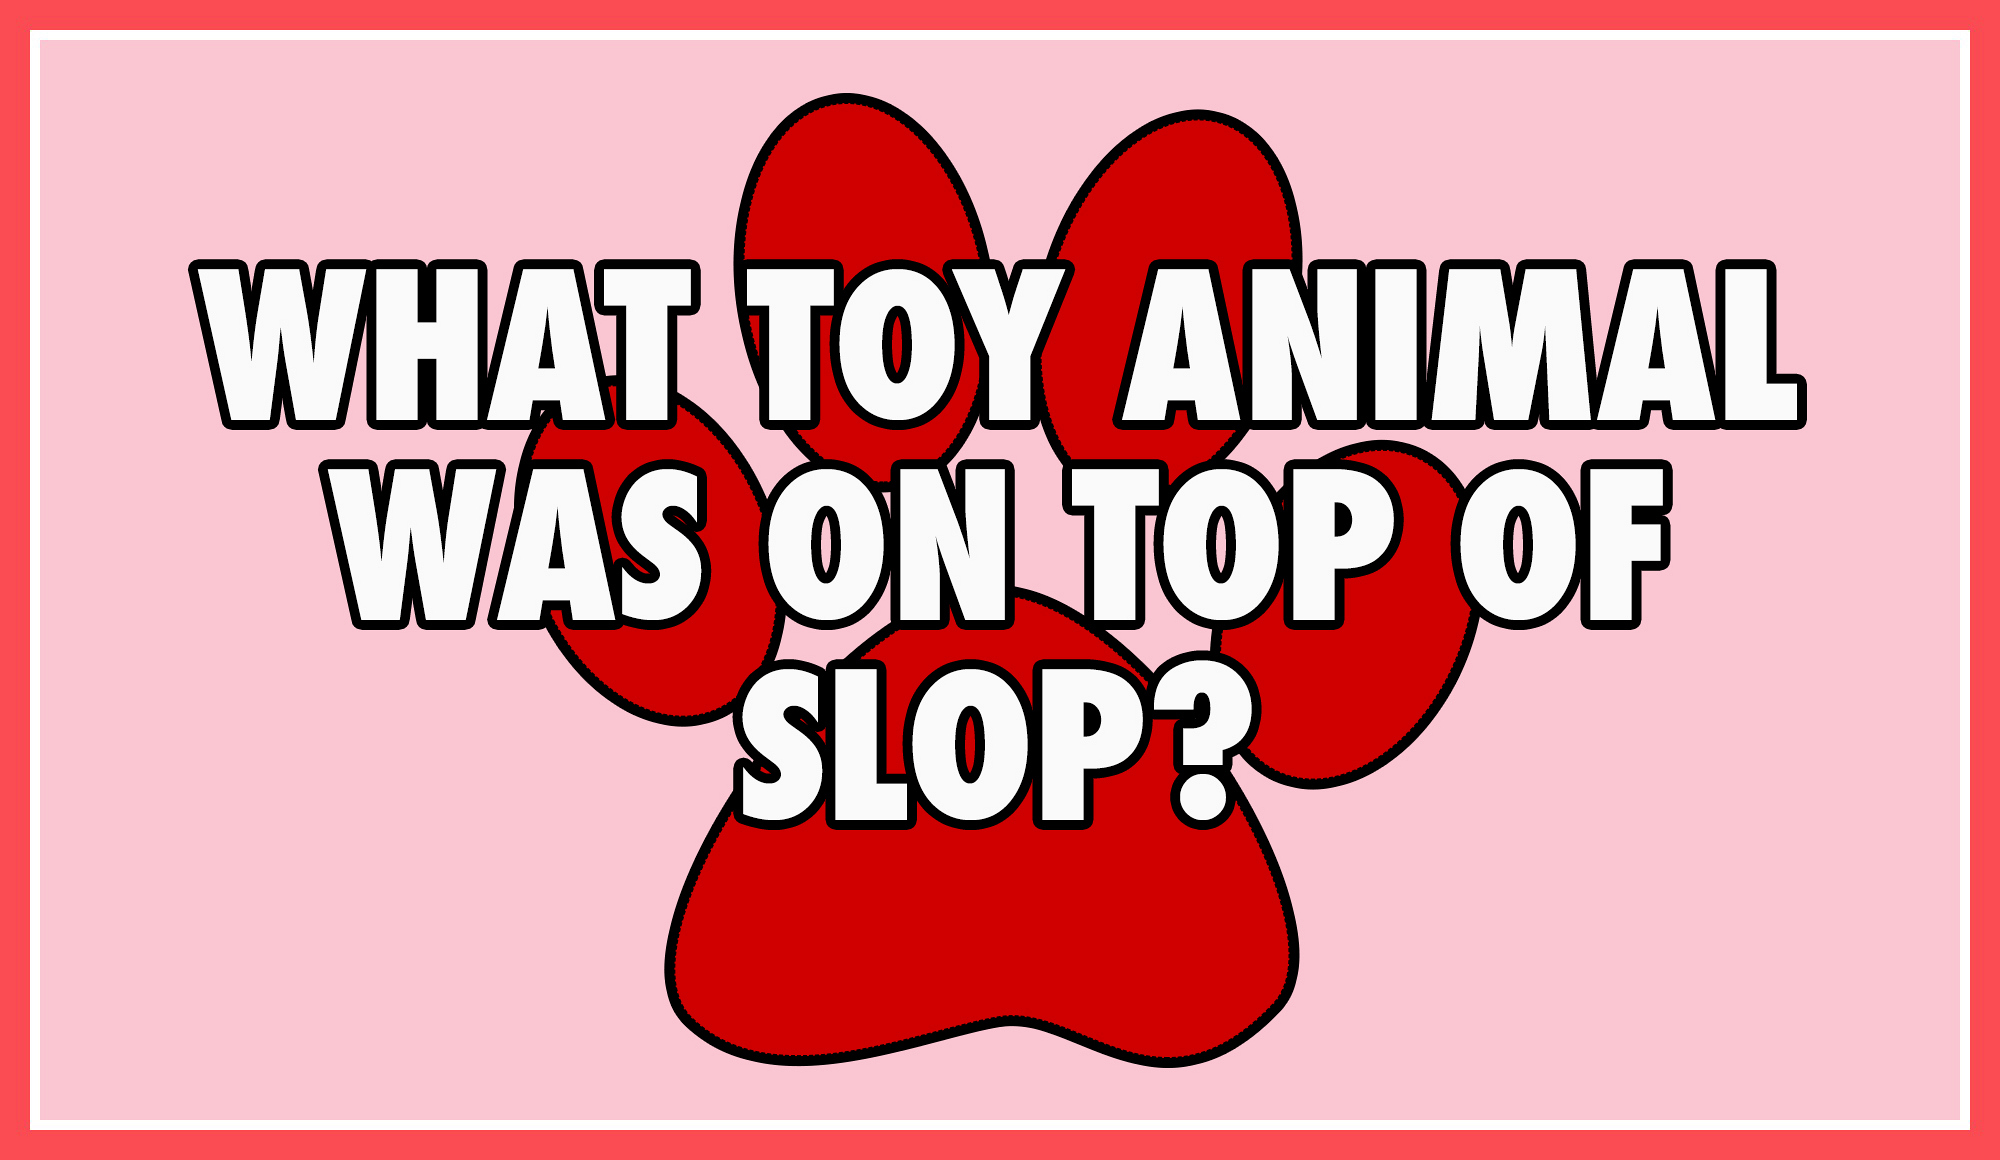 What toy animal was on top of slop?